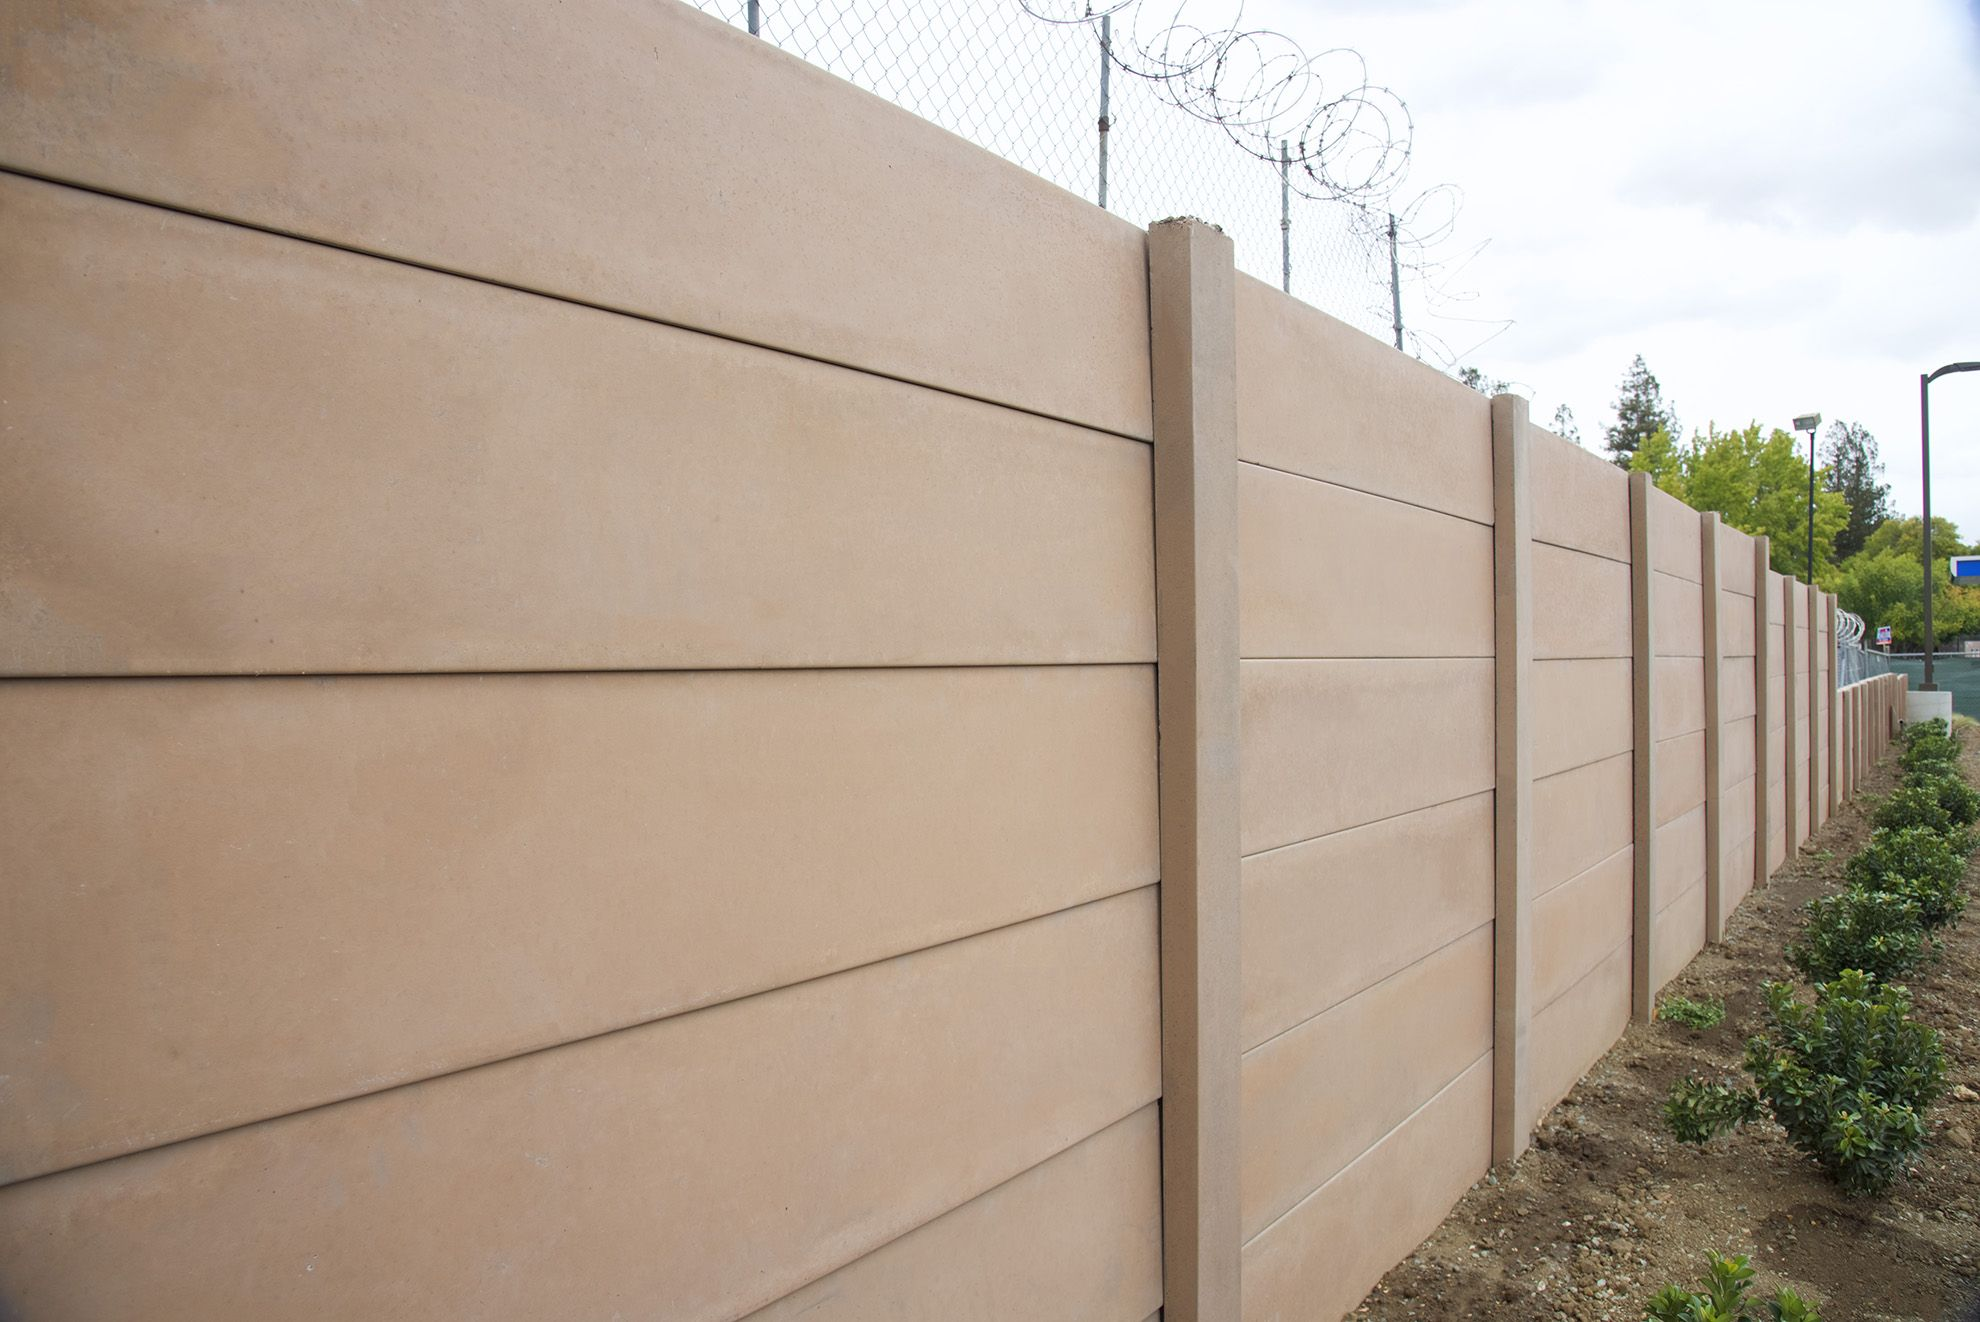 Precast Concrete Fence Panels And Fencing American Precast Concrete Fence Design Modern Fence Design Concrete Fence Wall